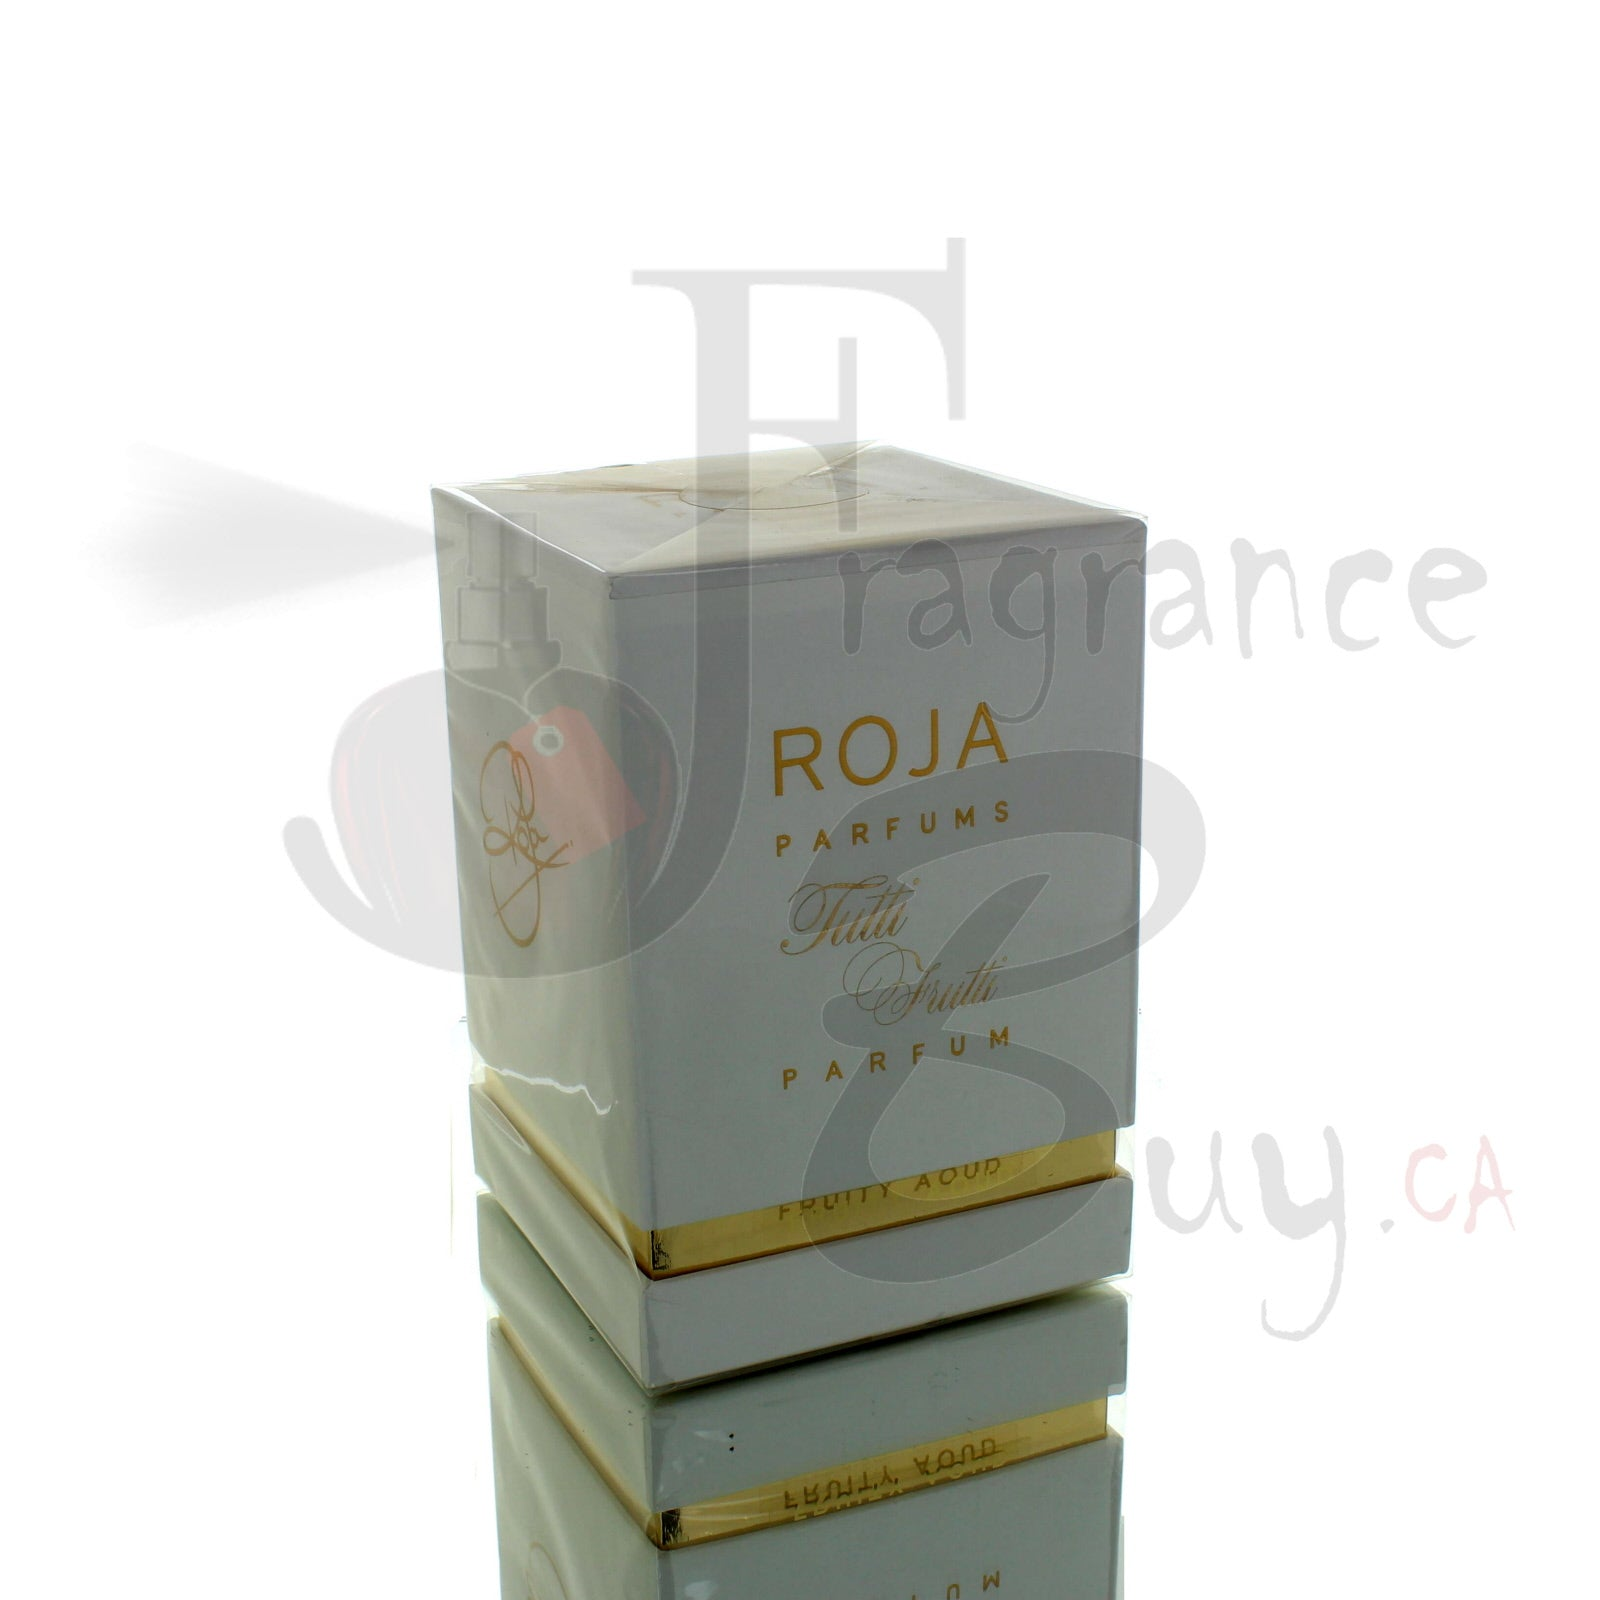 Roja Tutti Frutti Fruity Aoud Parfum For Man/Woman